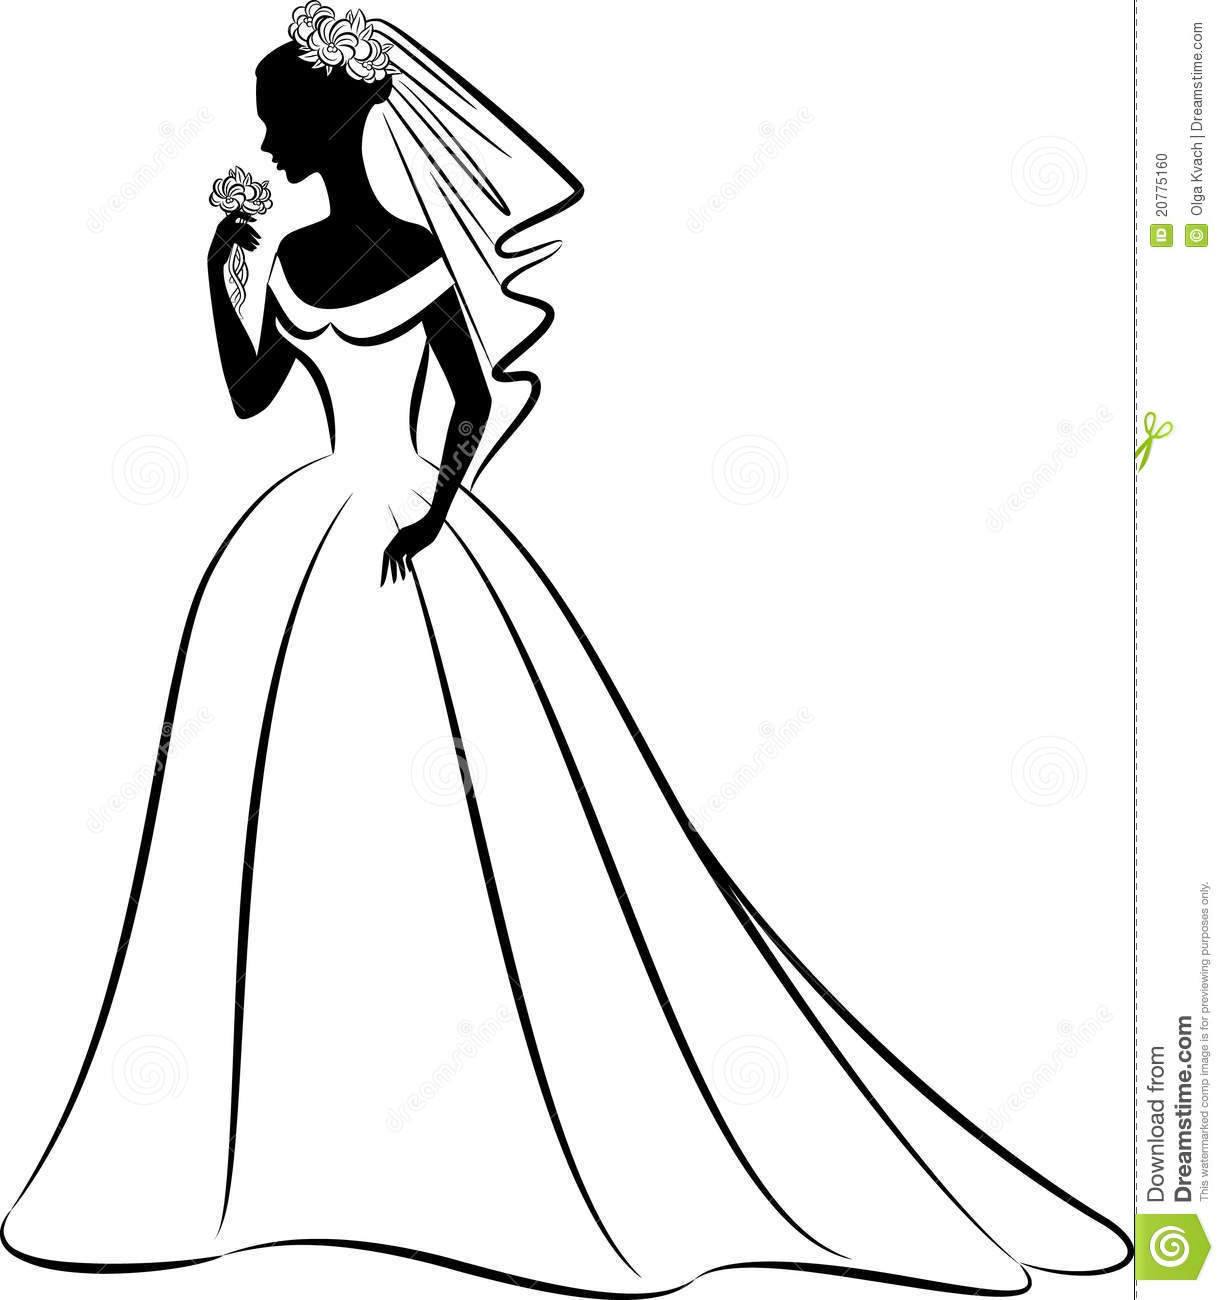 wedding party silhouette template free at getdrawings com free for rh getdrawings com bridal party clipart free